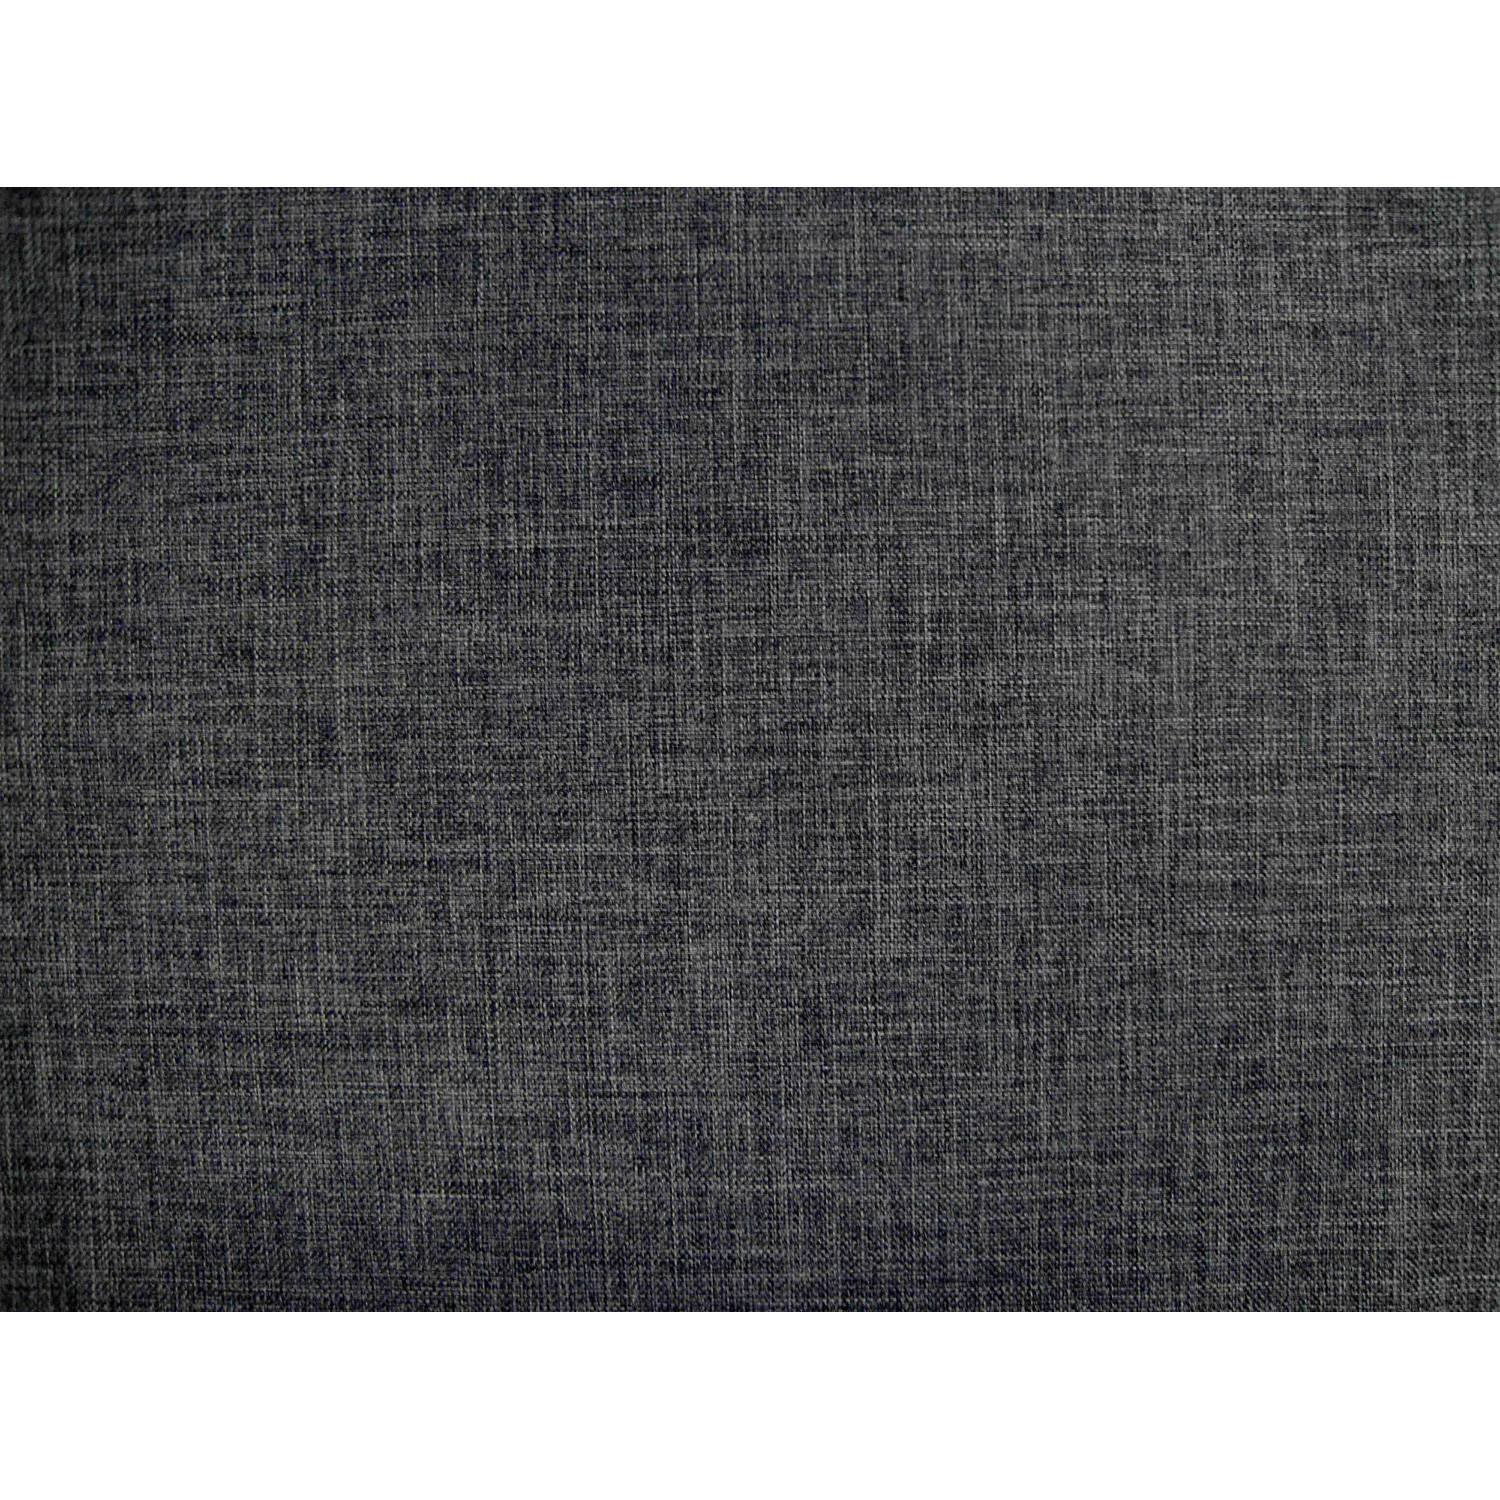 Umax Linen Texture Gray Futon Cover Full Size, Proudly Made in USA by DCG Stores